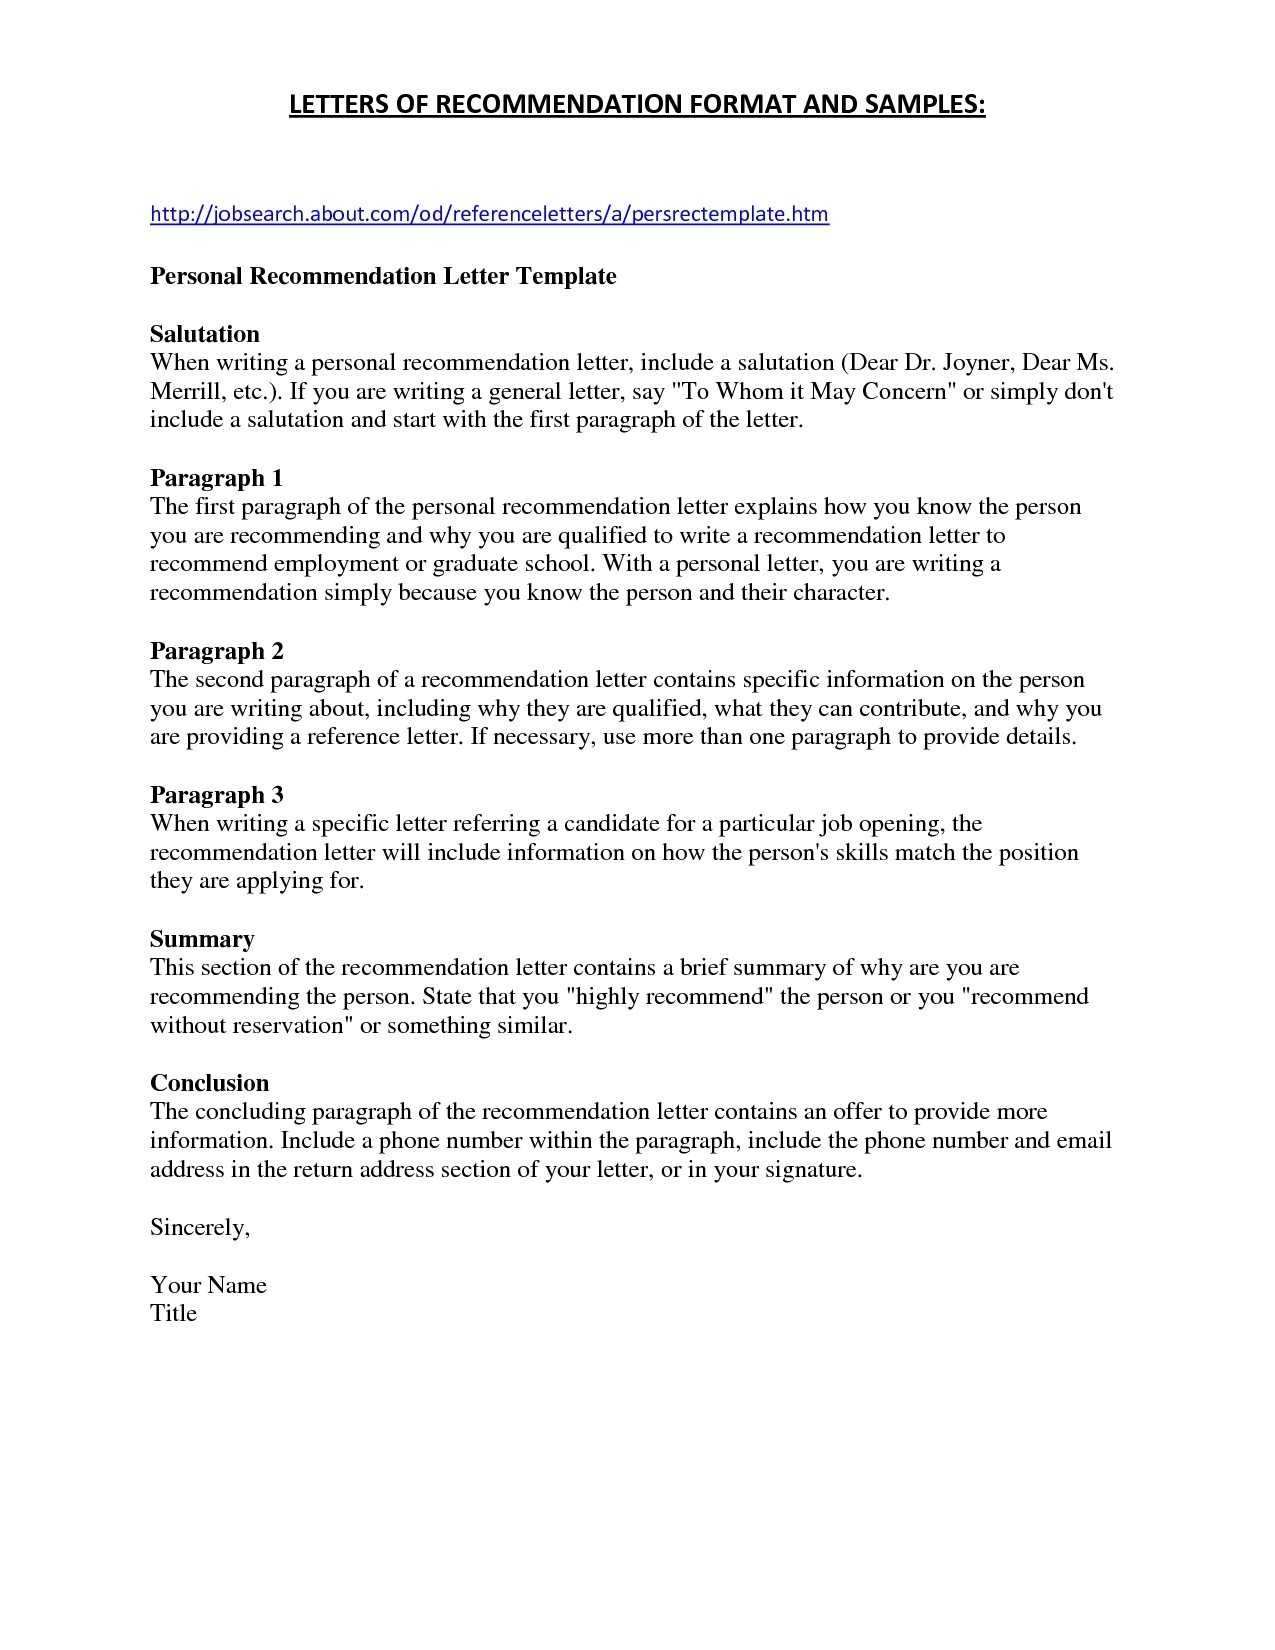 Child Maintenance Agreement Letter Template - Child Support Letter Sample Luxury Free Sample Child Support